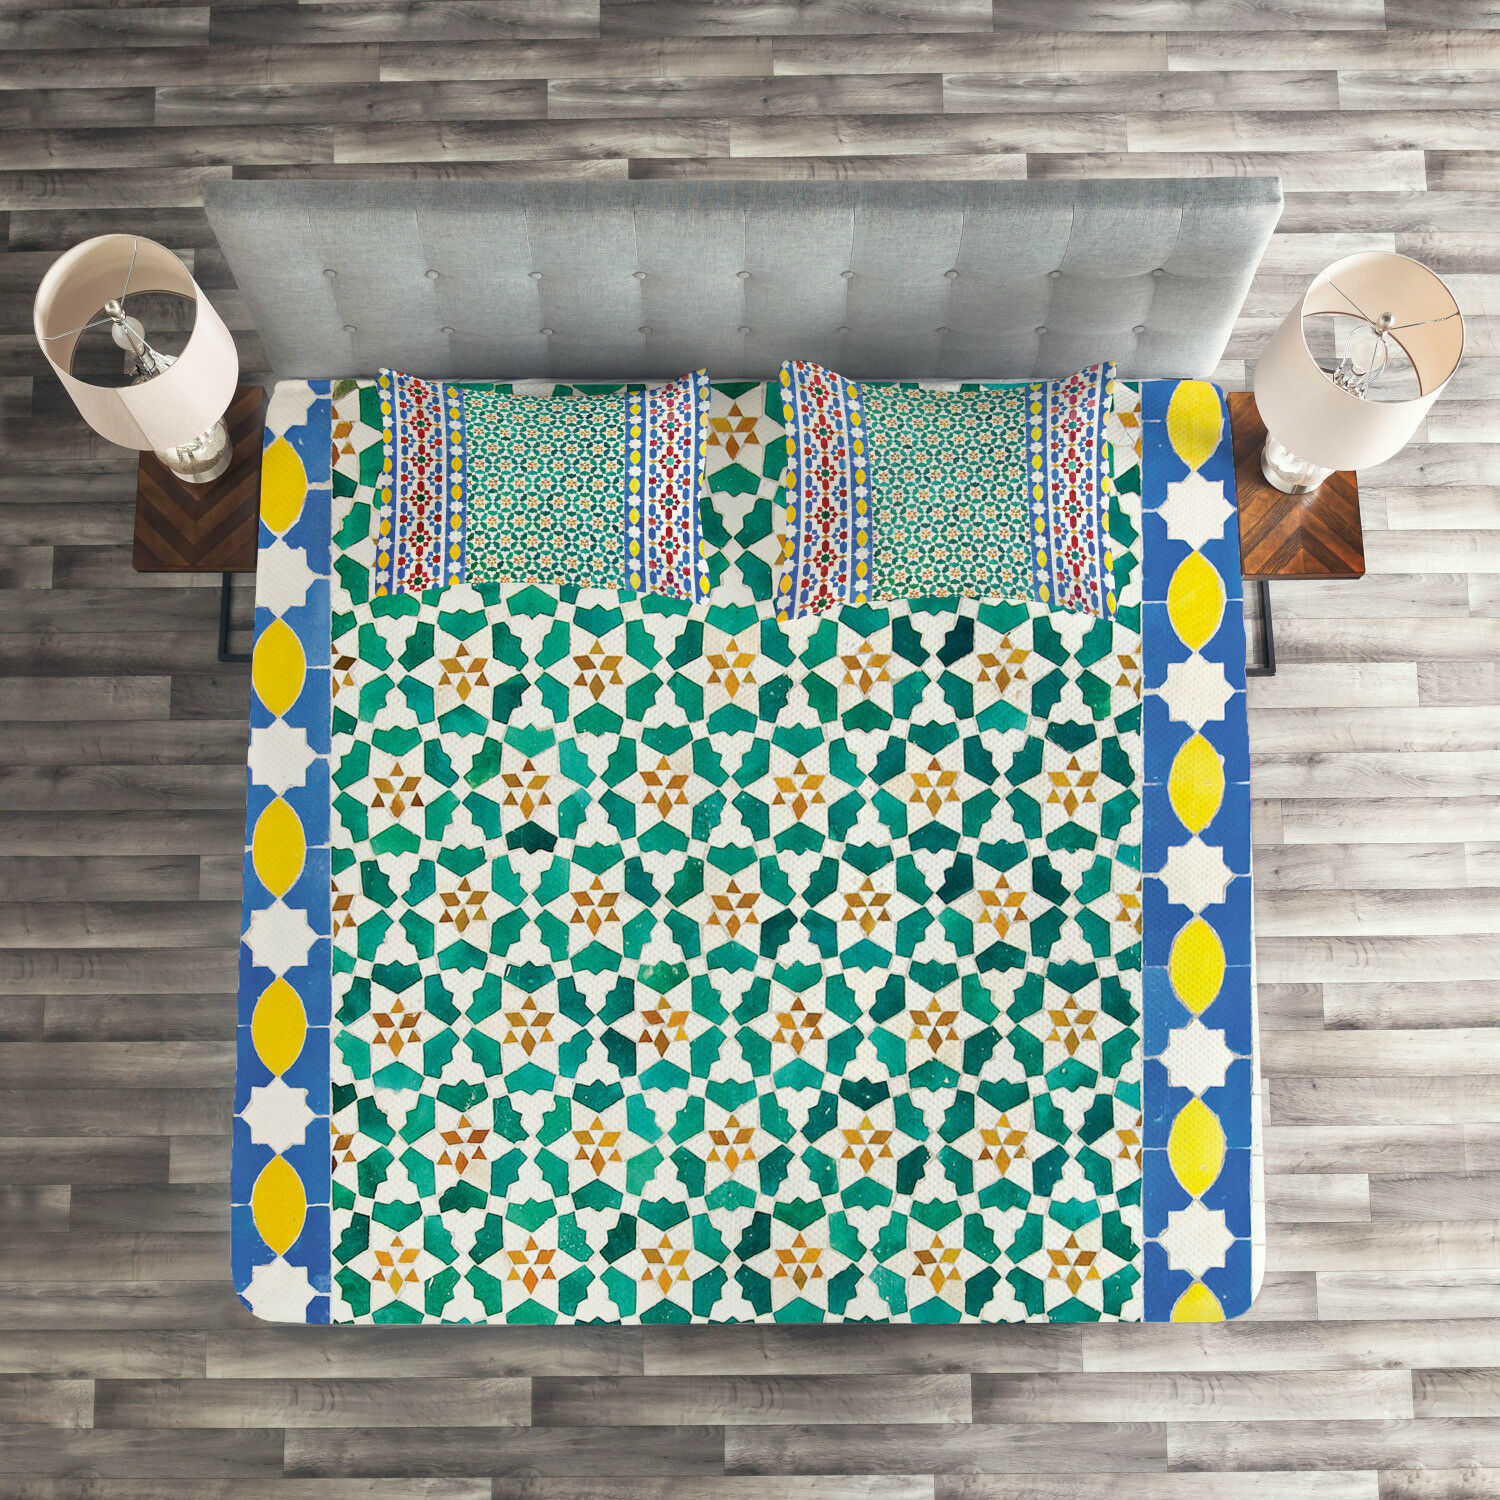 Mgoldccan Quilted Coverlet & Pillow Shams Set, colorful Mosaic Wall Print